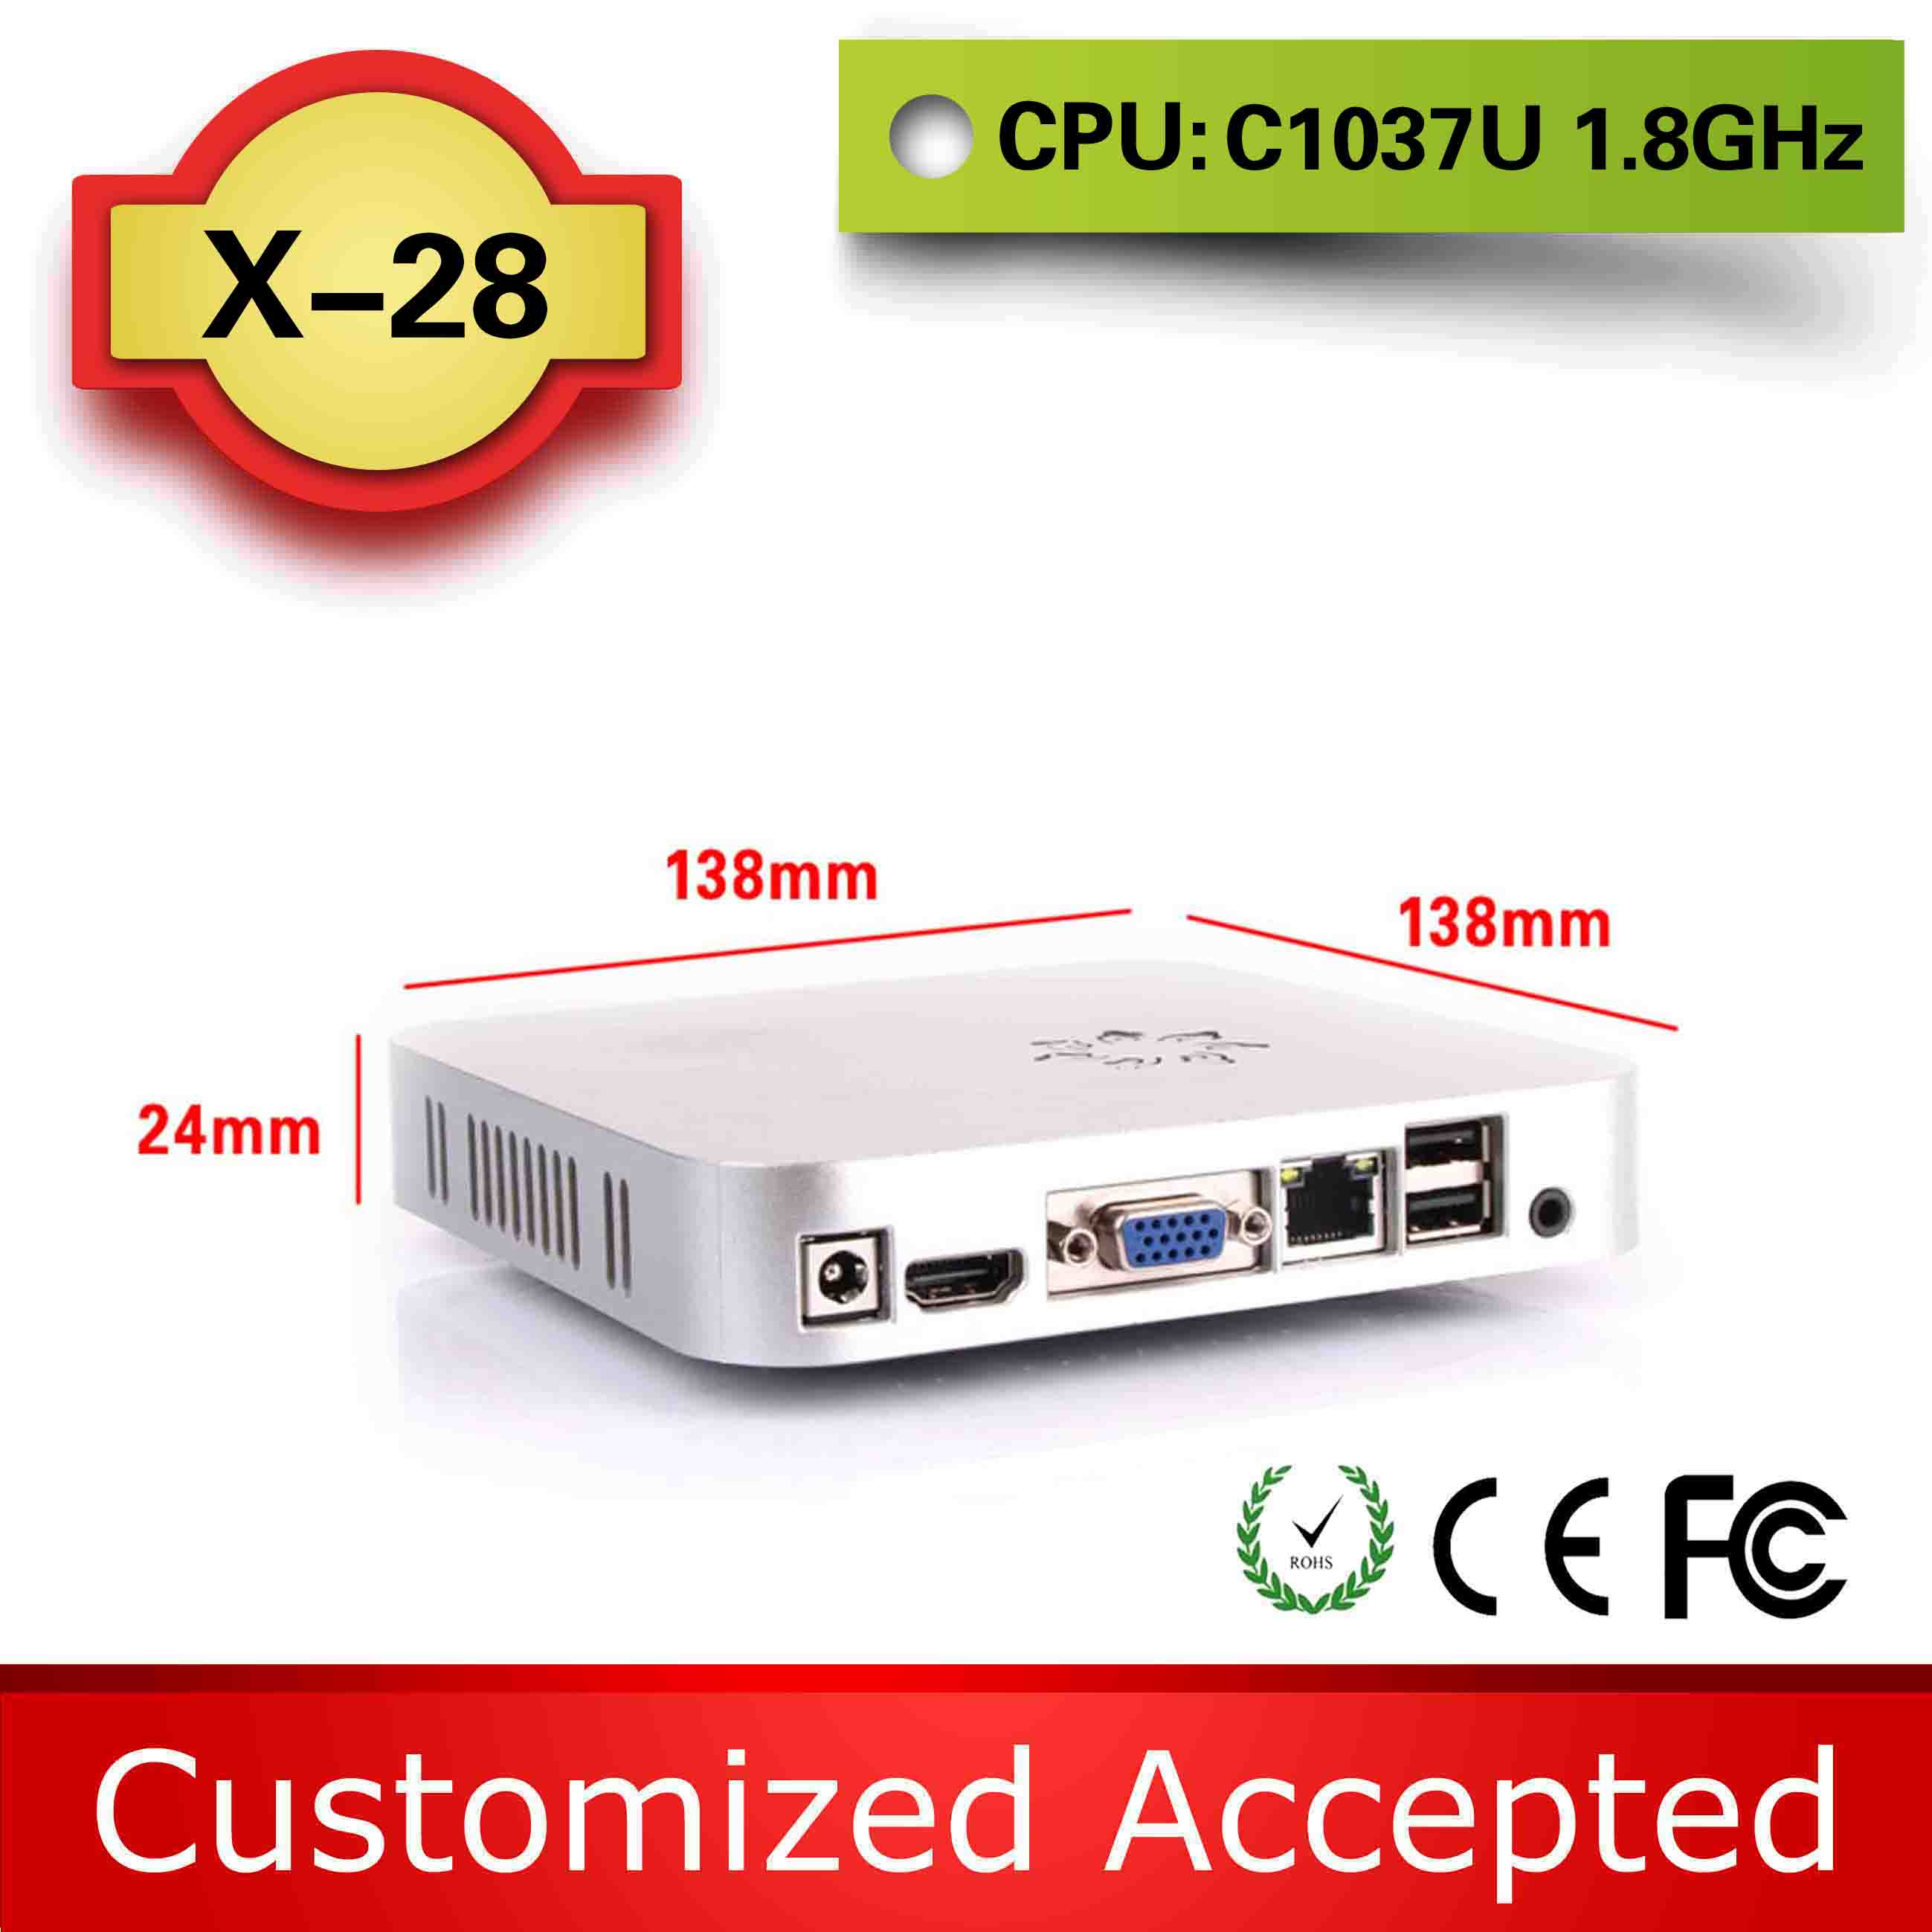 12*12 mini motherboard X28 c1037u mini pc barebone thin client embedded computer living room computer small compact Save space(China (Mainland))